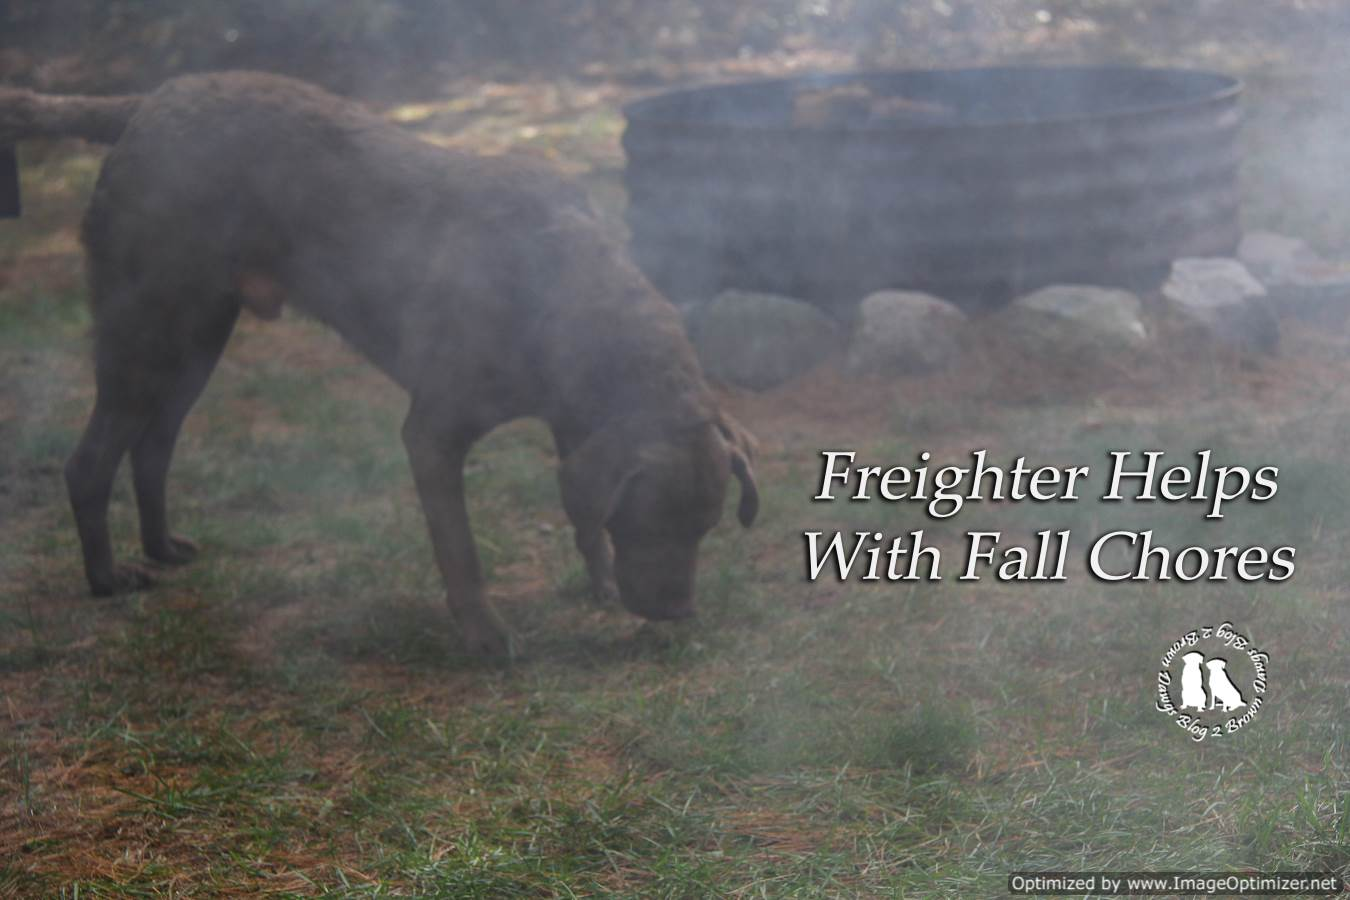 Freighter Helps With Fall Chores